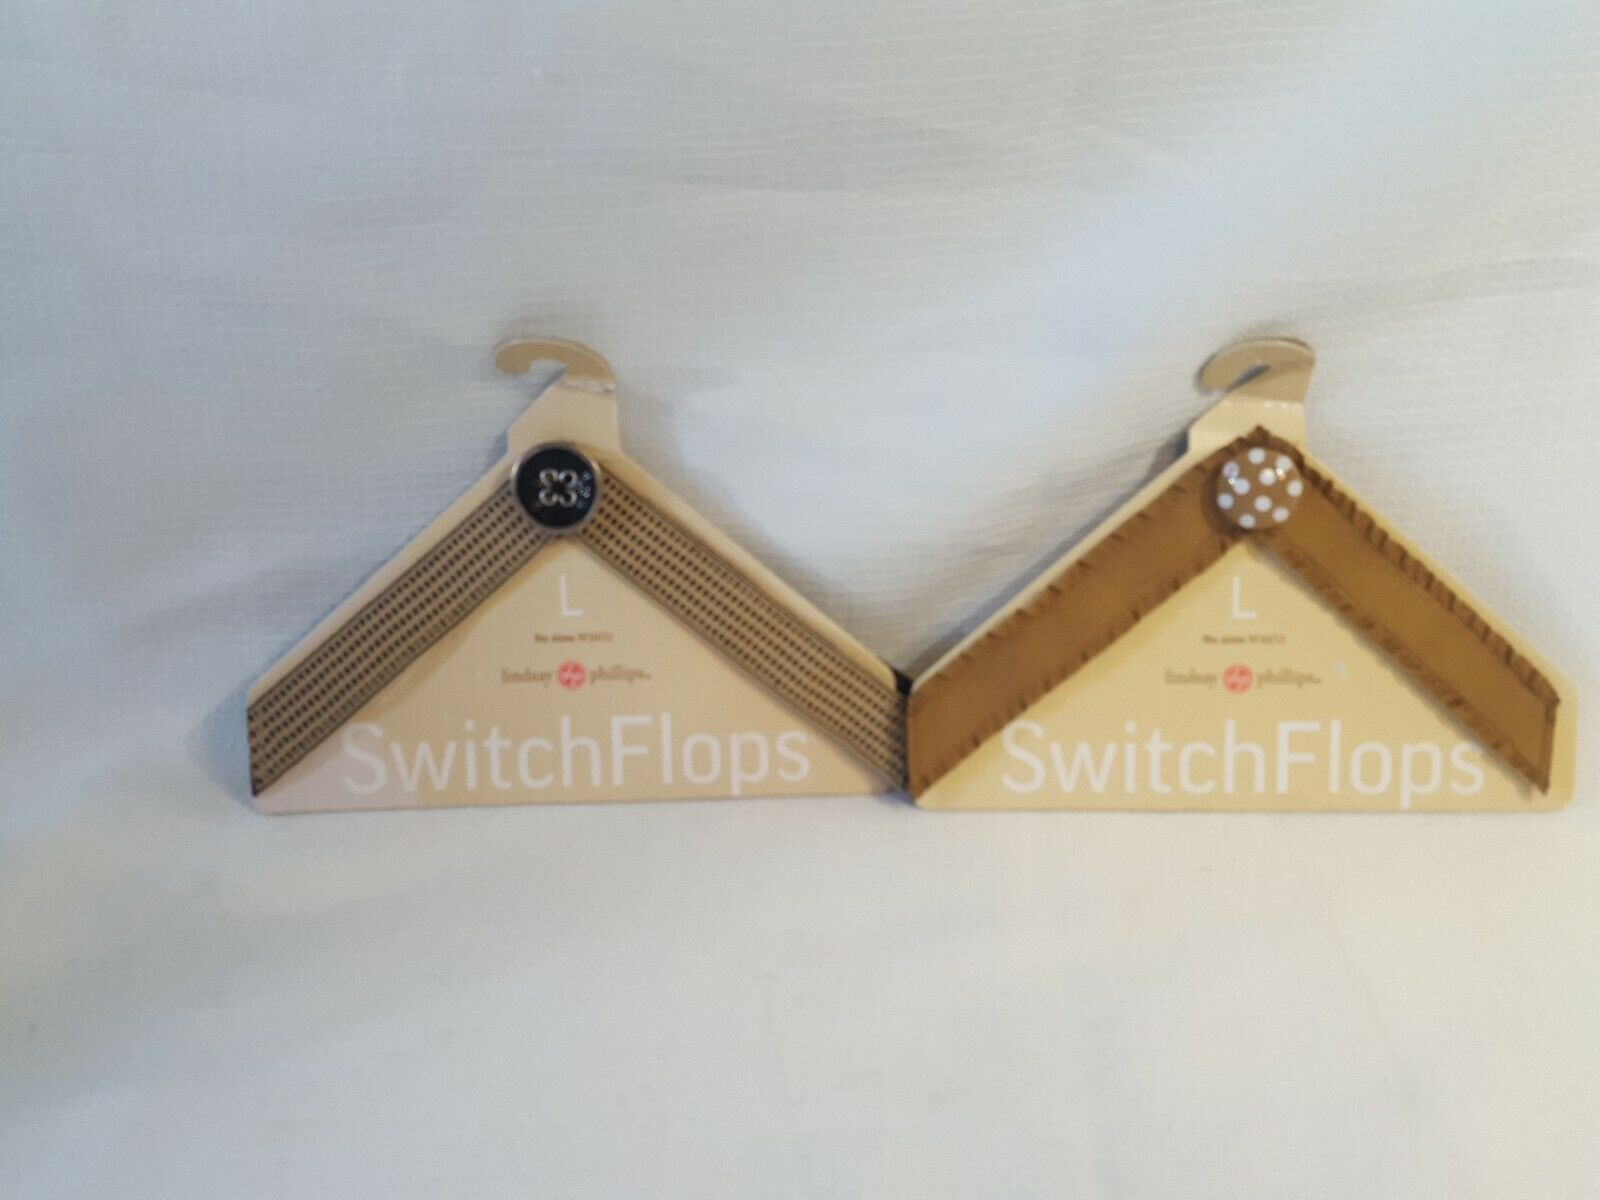 2-Switch Flops by Lindsay Phillips Large Interchangeable Straps Fits 9/10/11